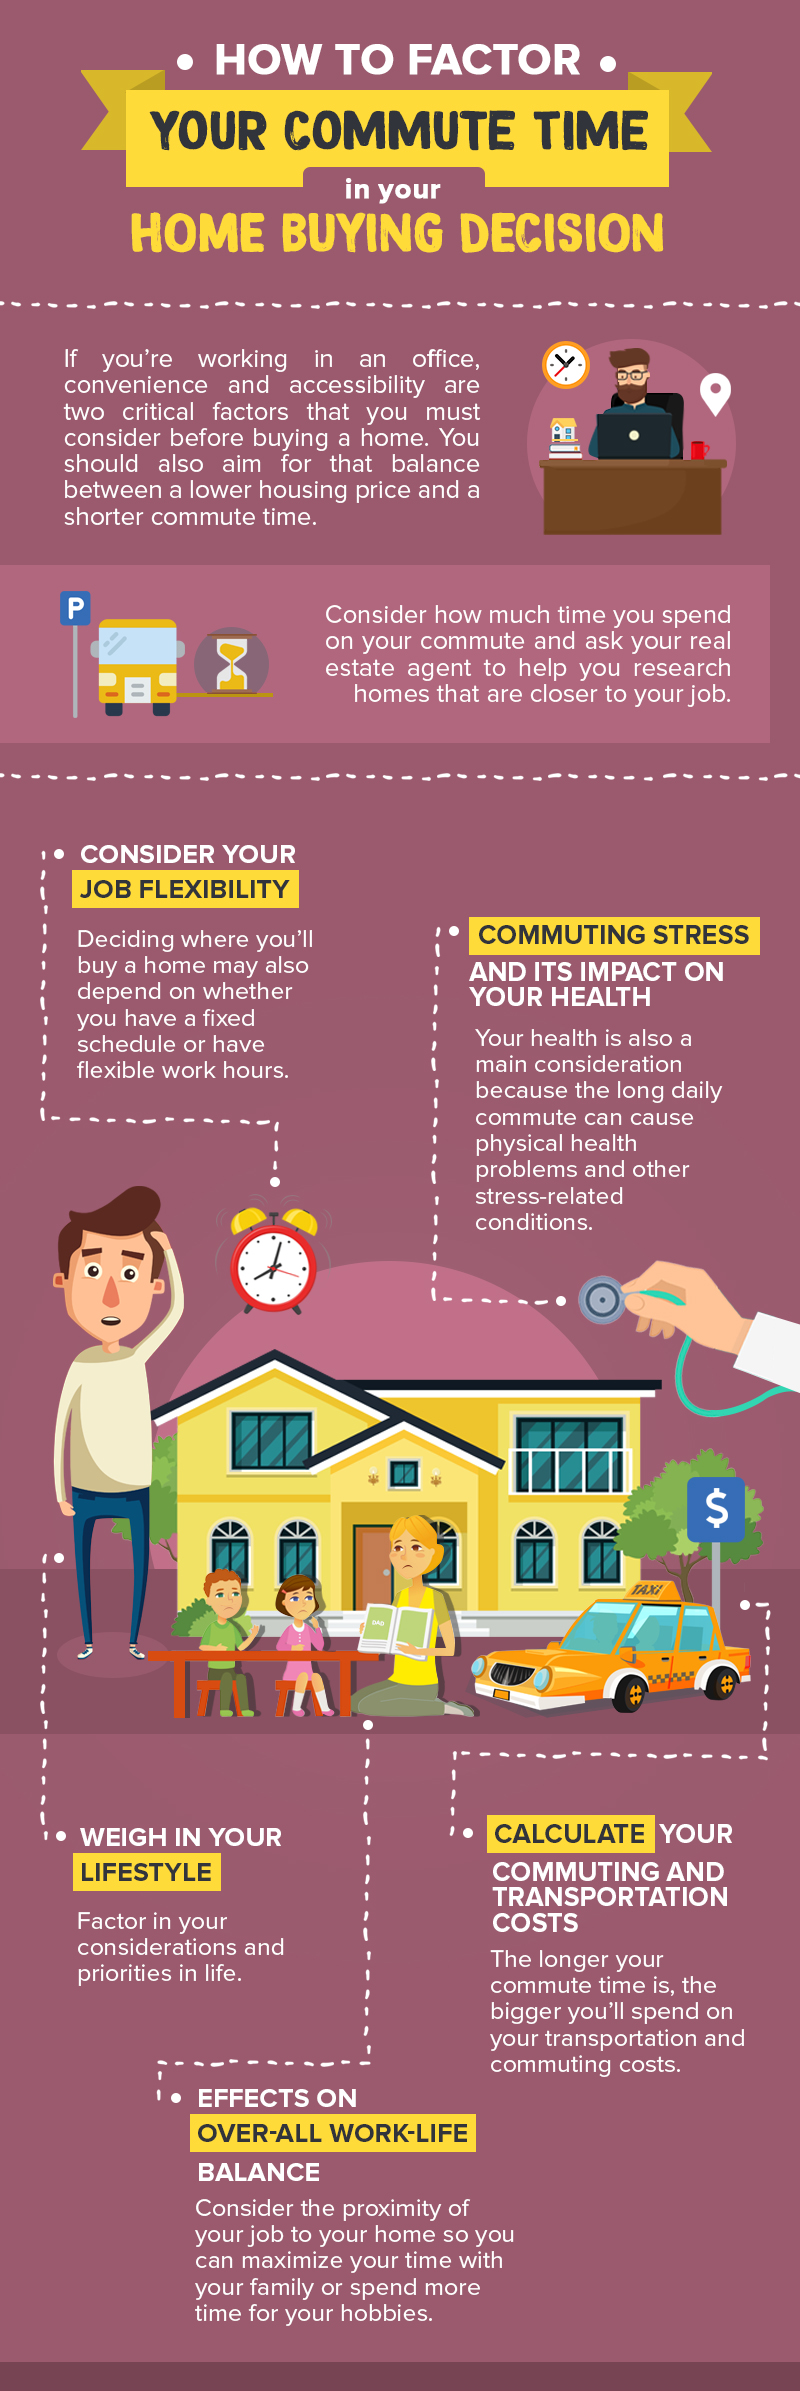 How To Factor Your Commute Time In Your Home Buying Decision